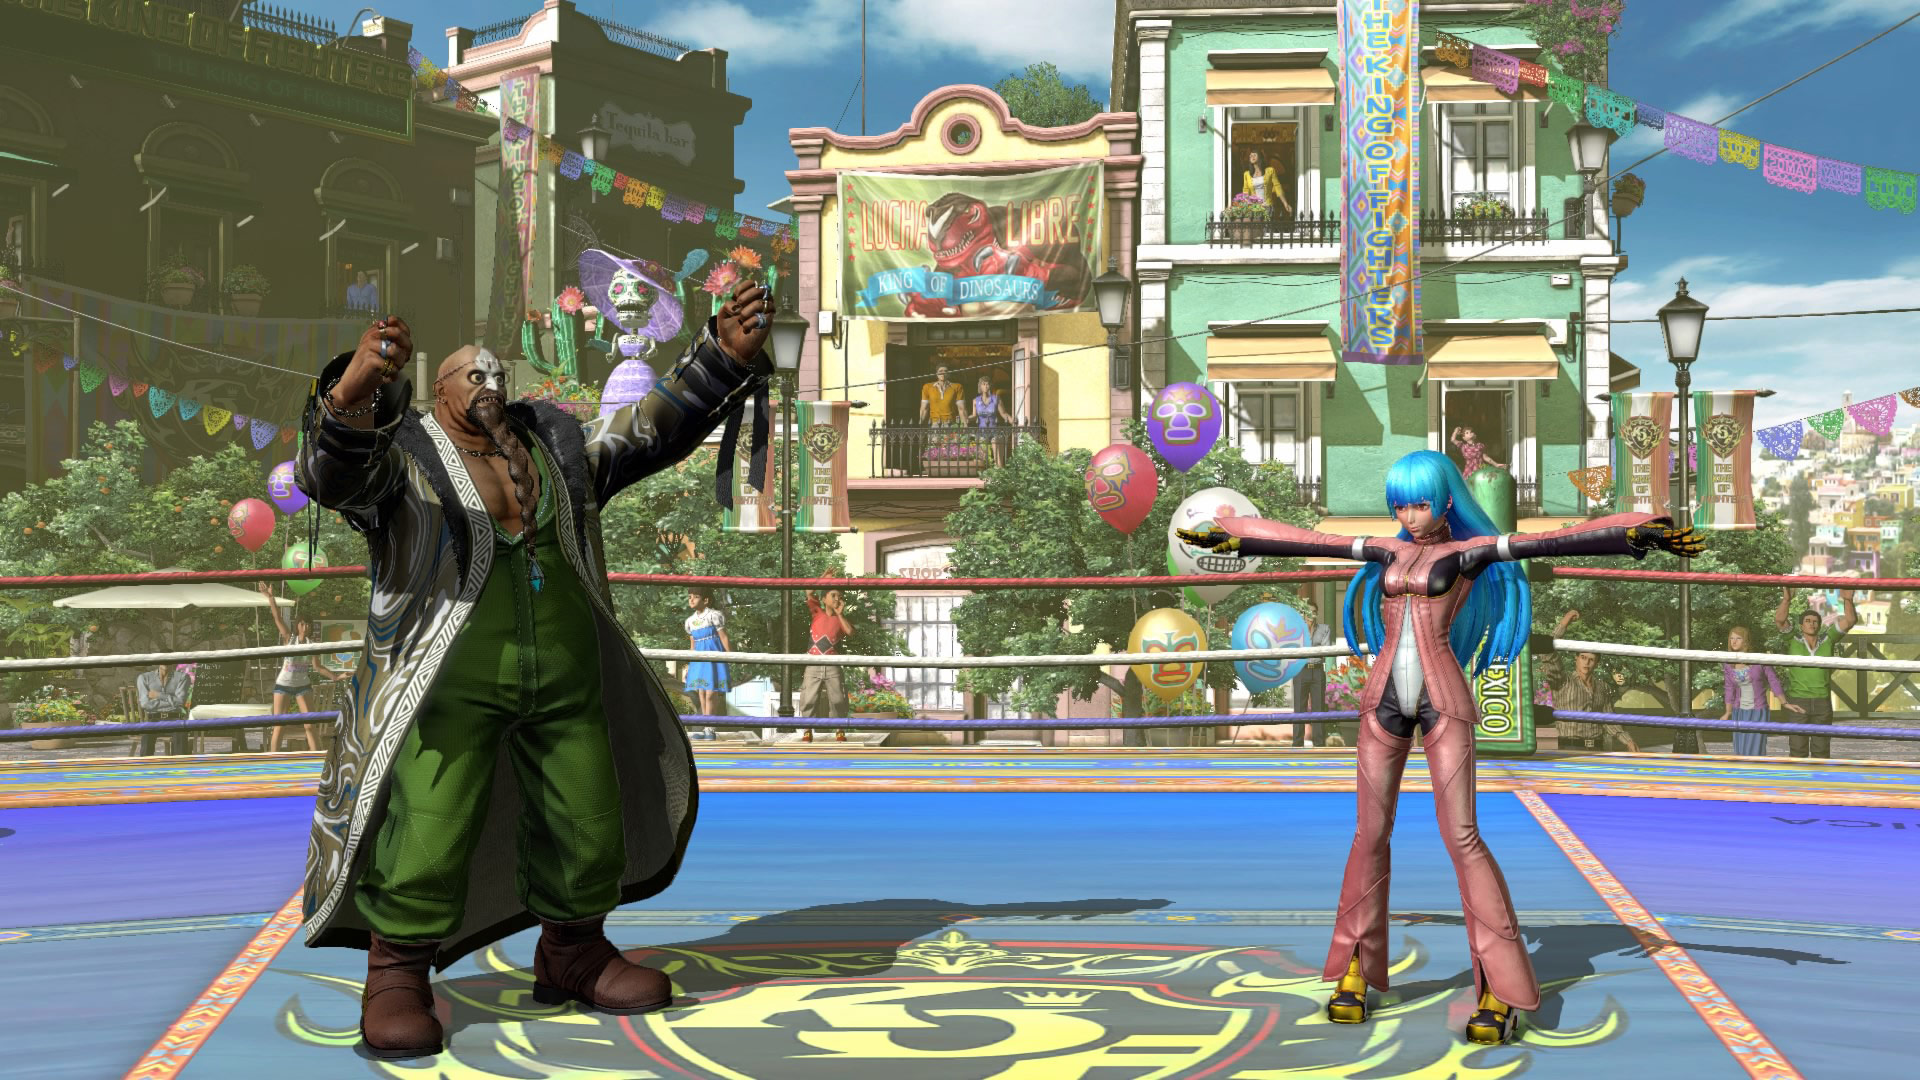 King of Fighters 14 1.10 graphics update 56 out of 60 image gallery